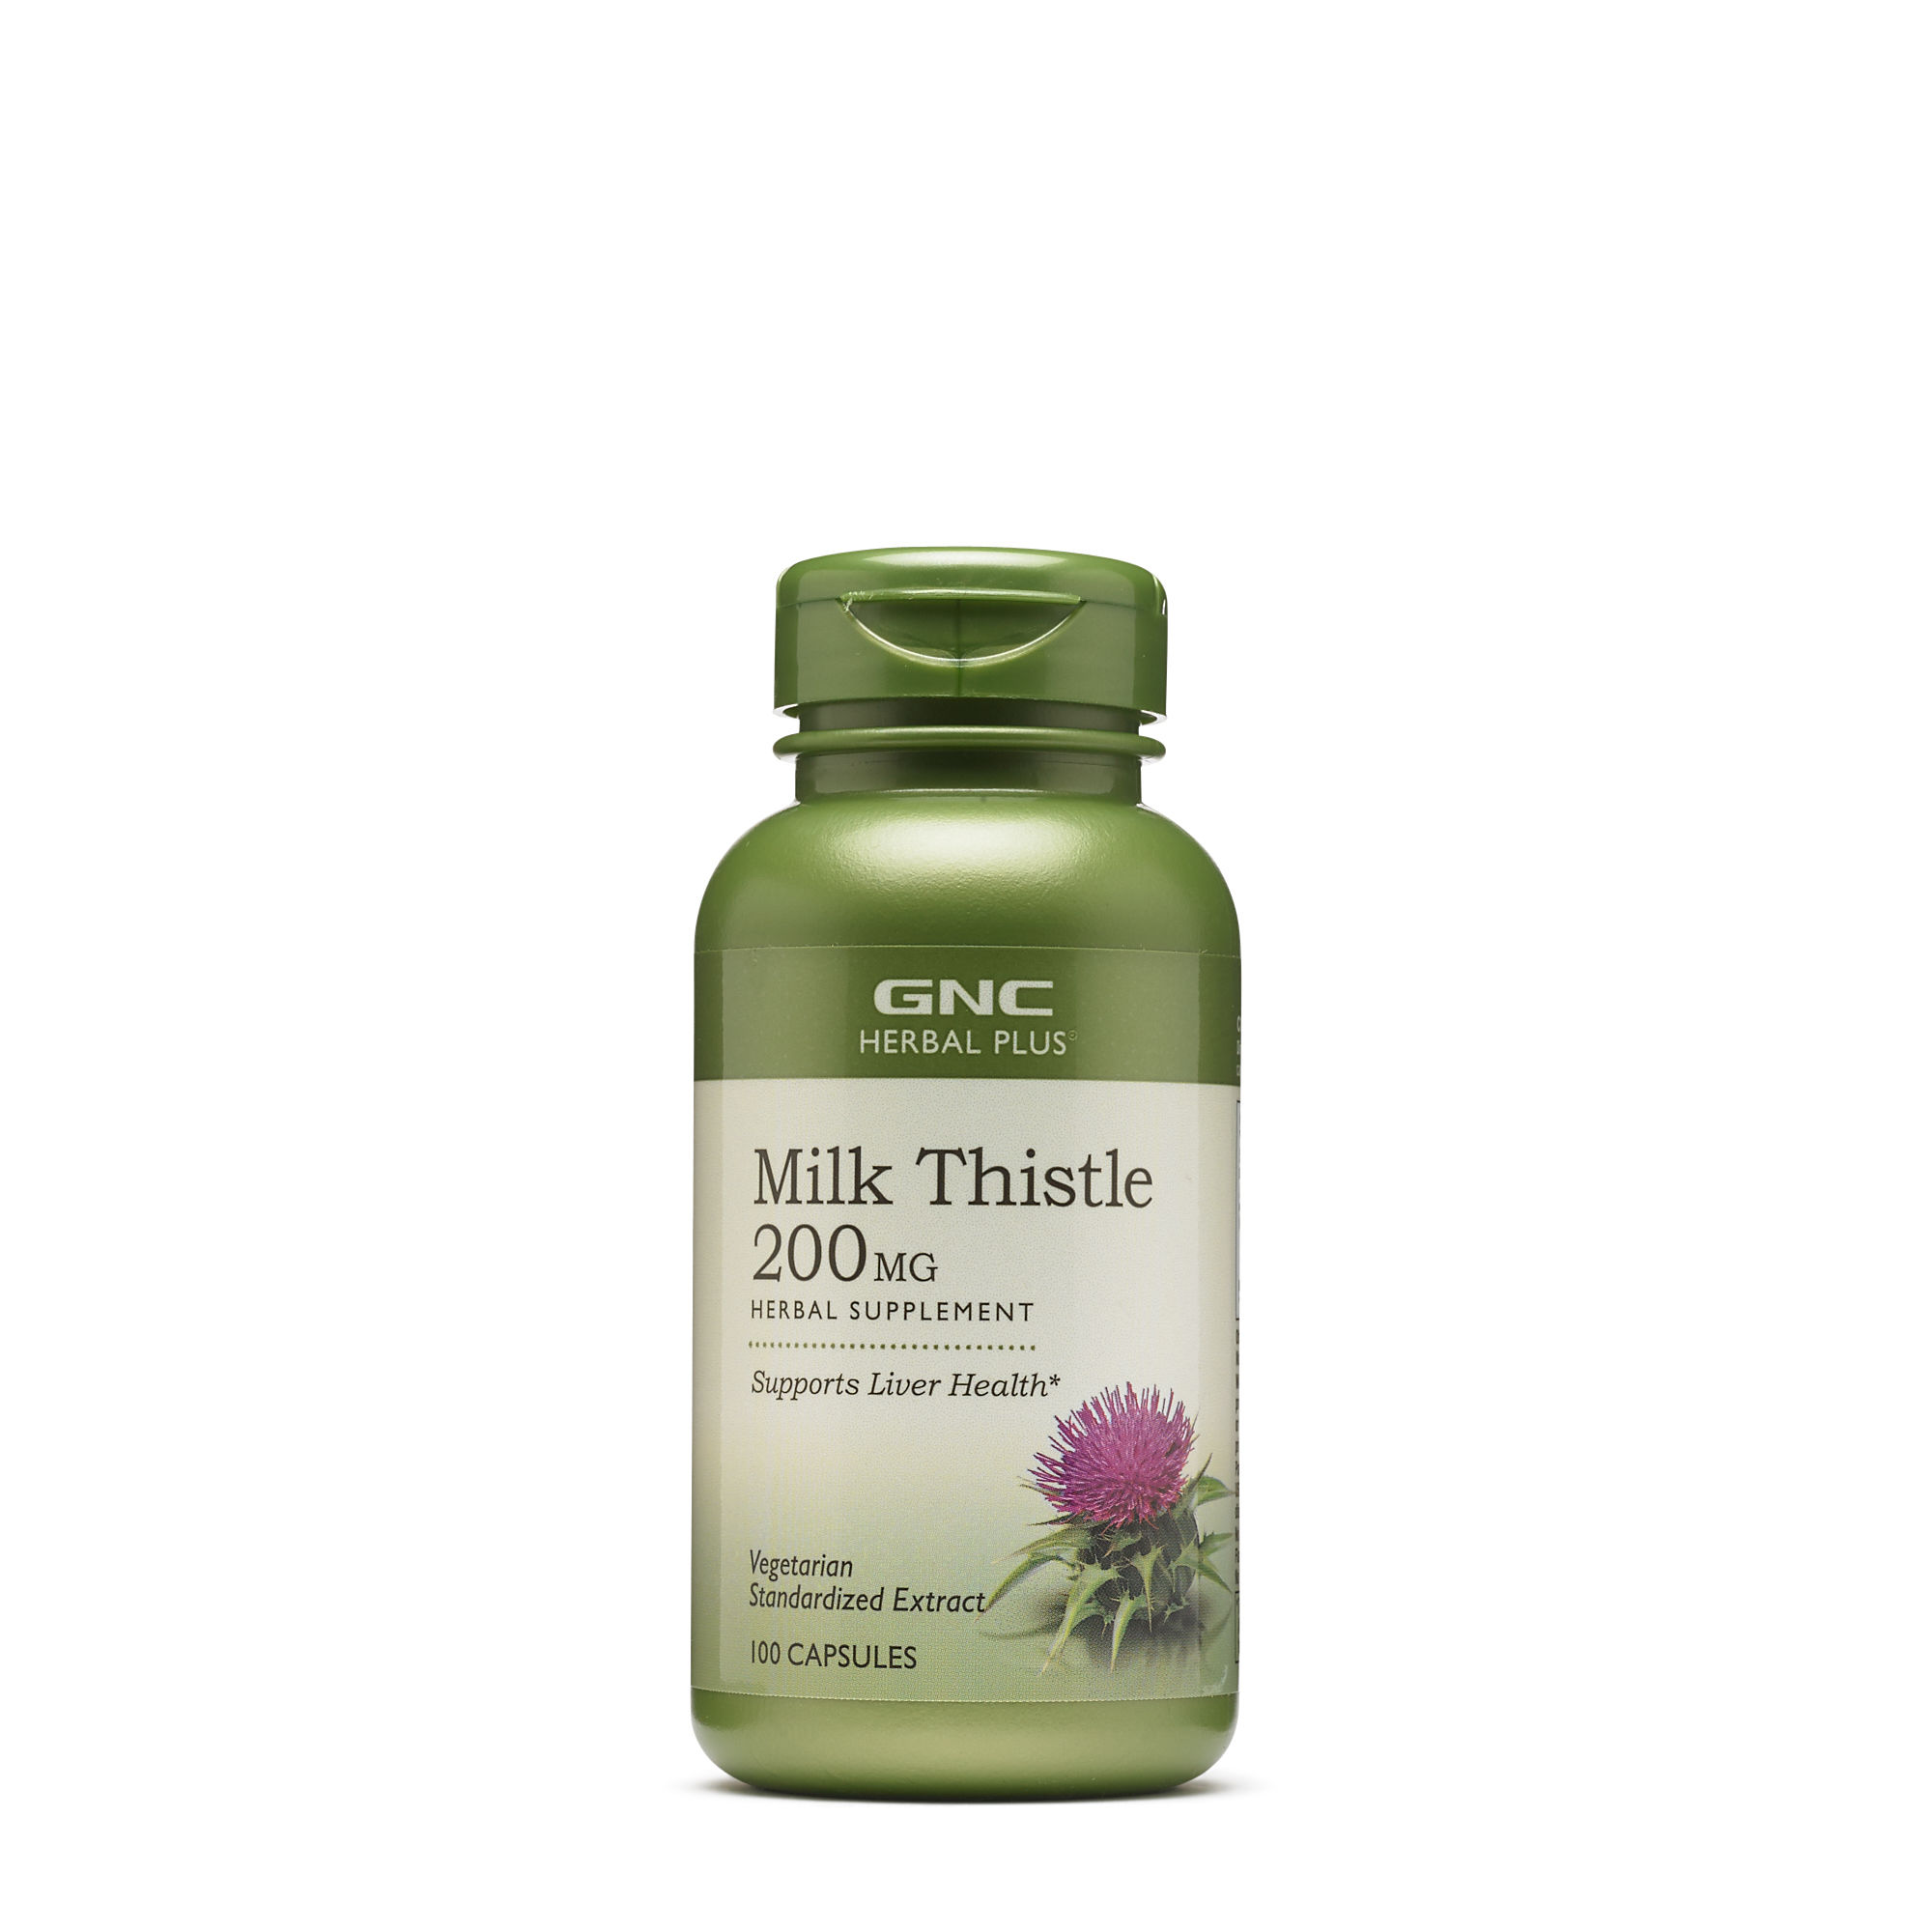 MILK THISTLE 200 MG